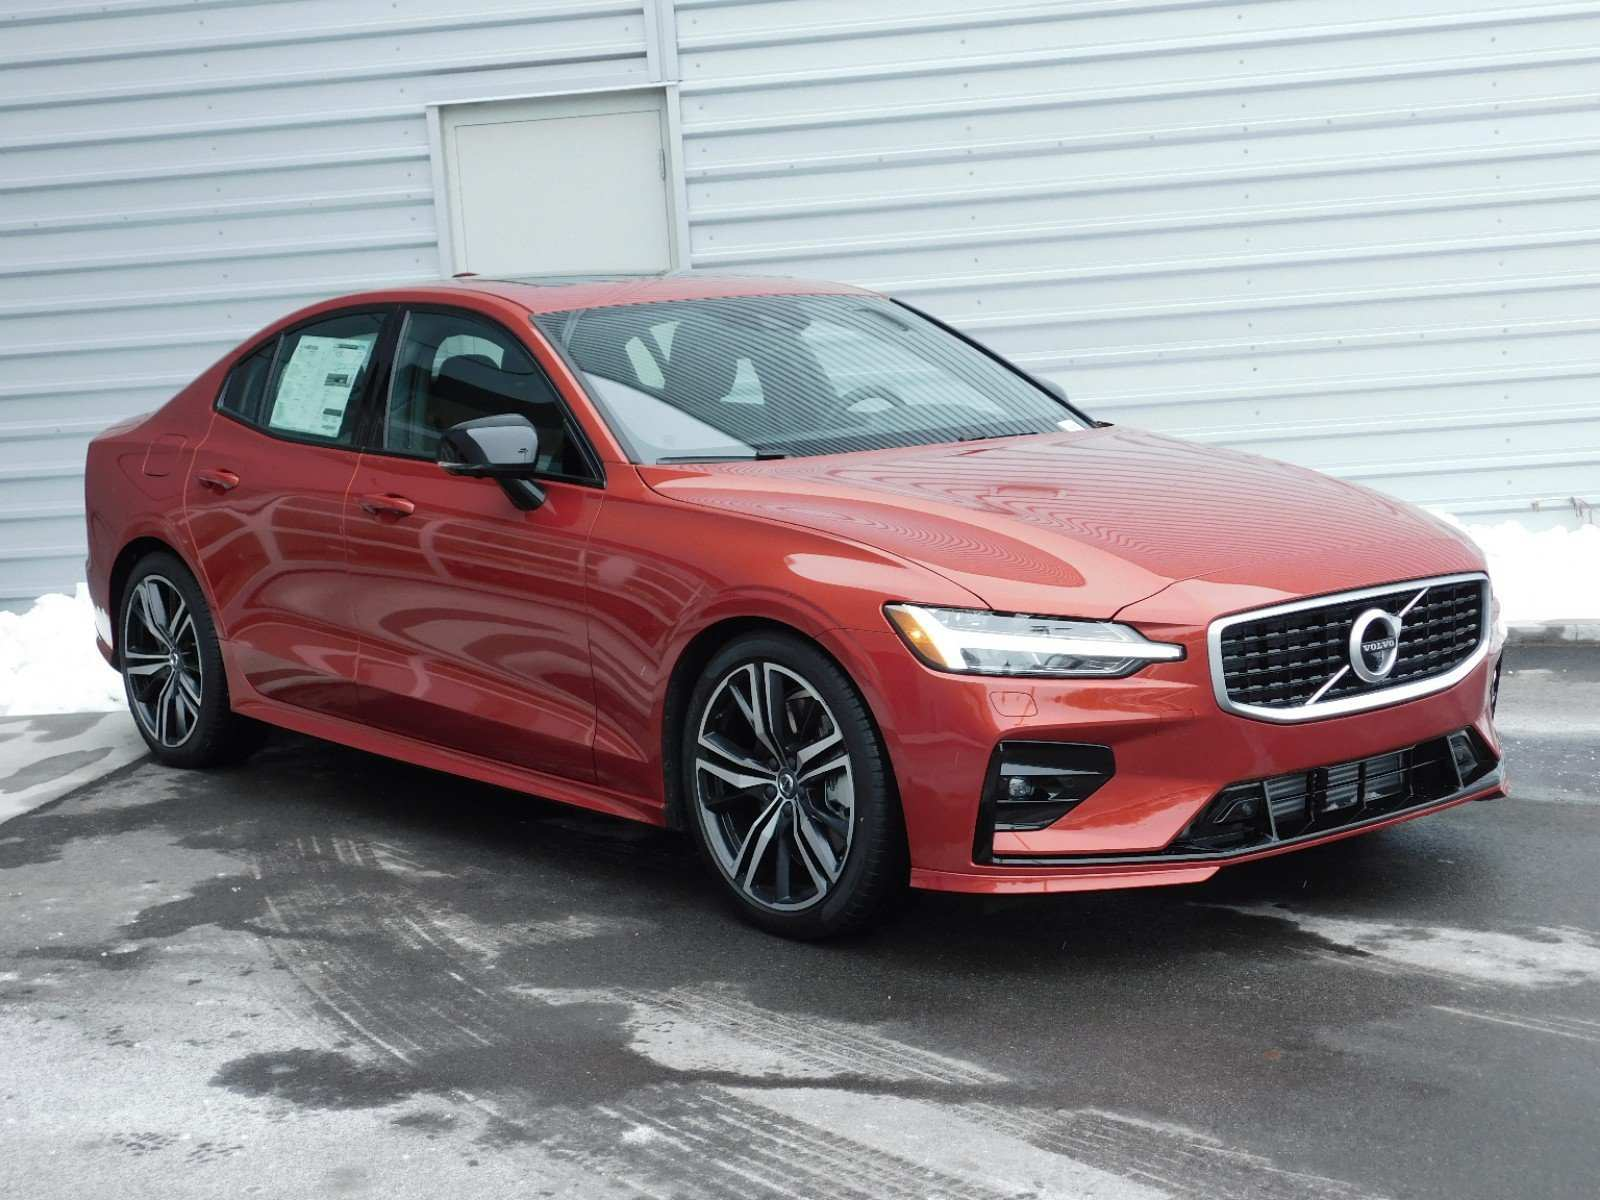 43 All New 2019 Volvo S60 R Speed Test